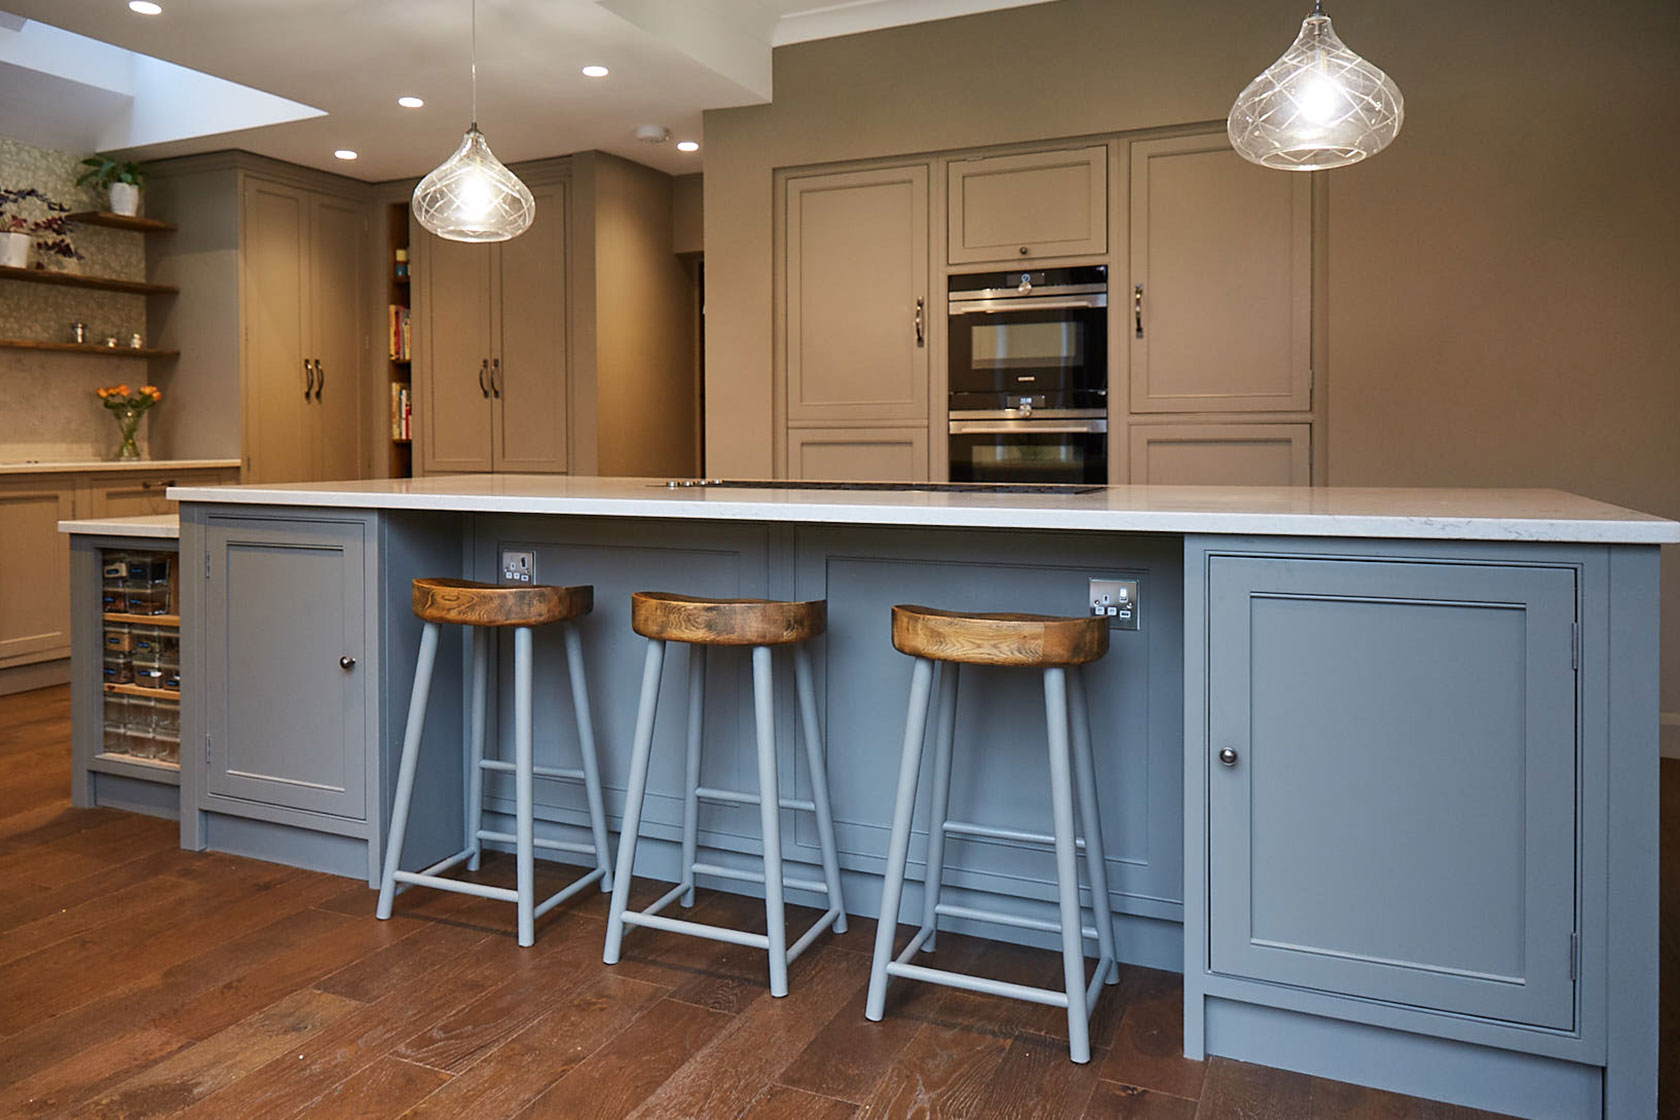 Chunky farmhouse stools with oak seat and painted legs